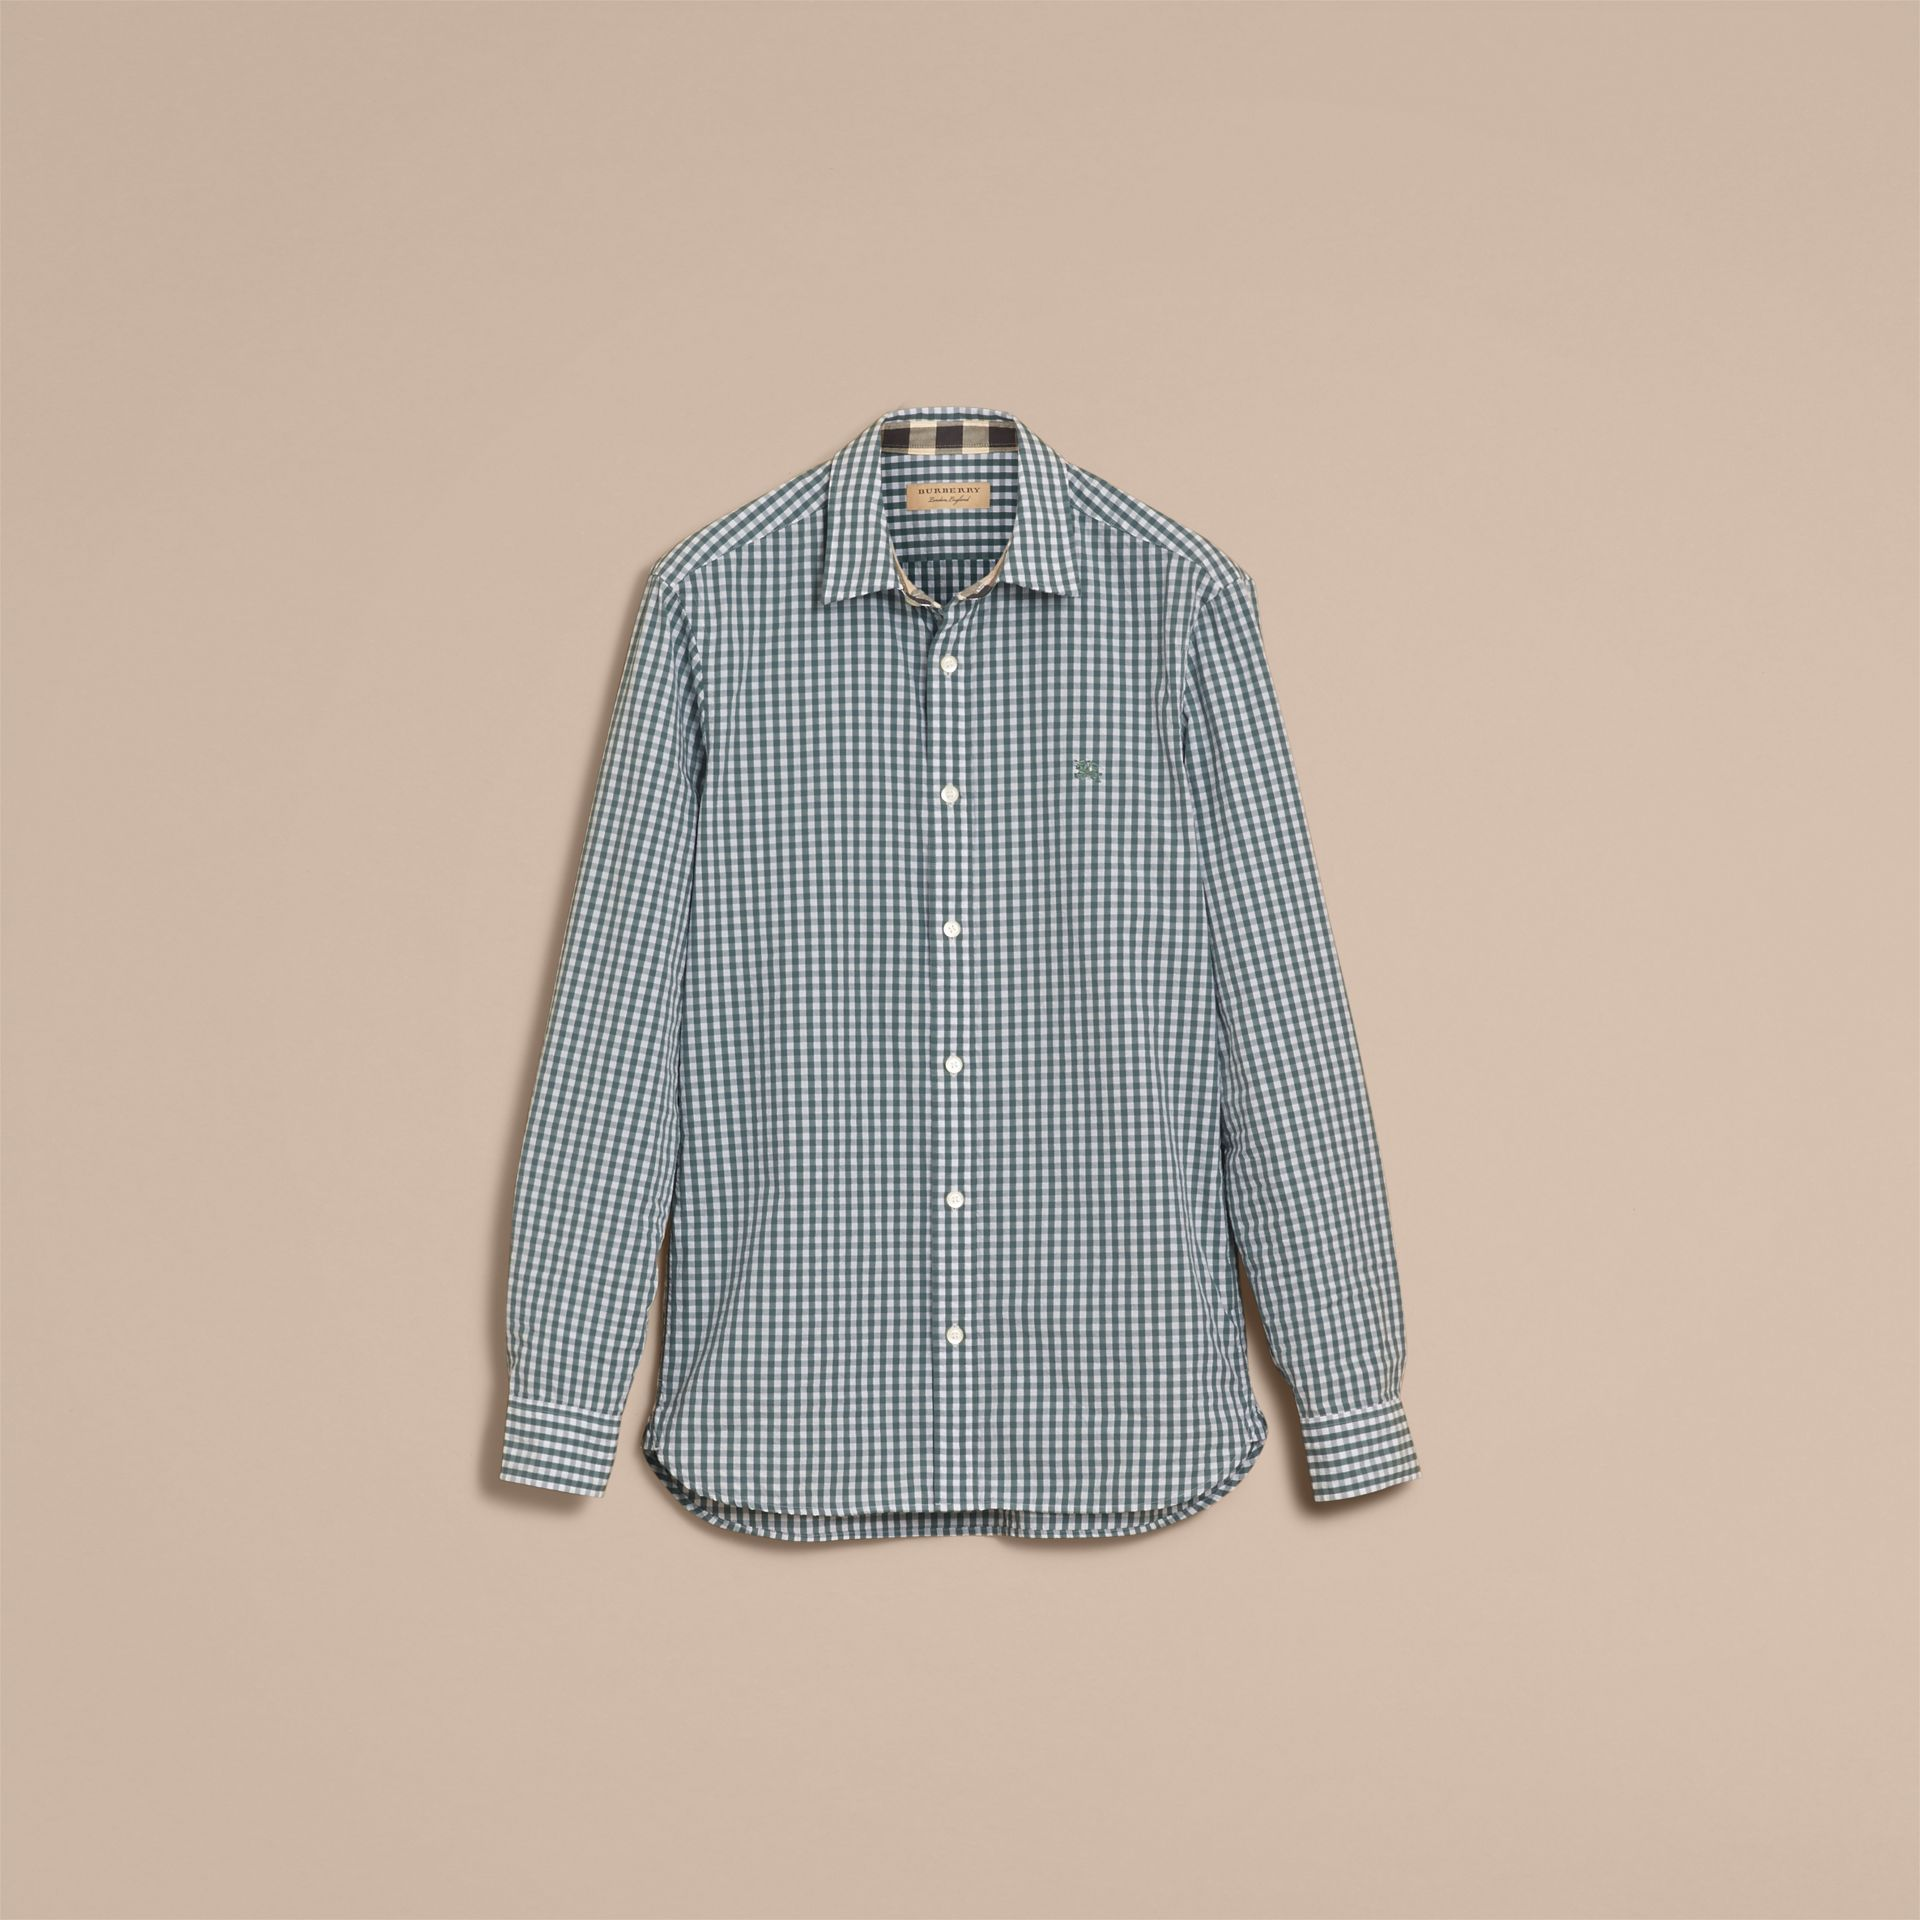 Gingham Cotton Poplin Shirt with Check Detail in Dusty Teal Blue - Men | Burberry - gallery image 4